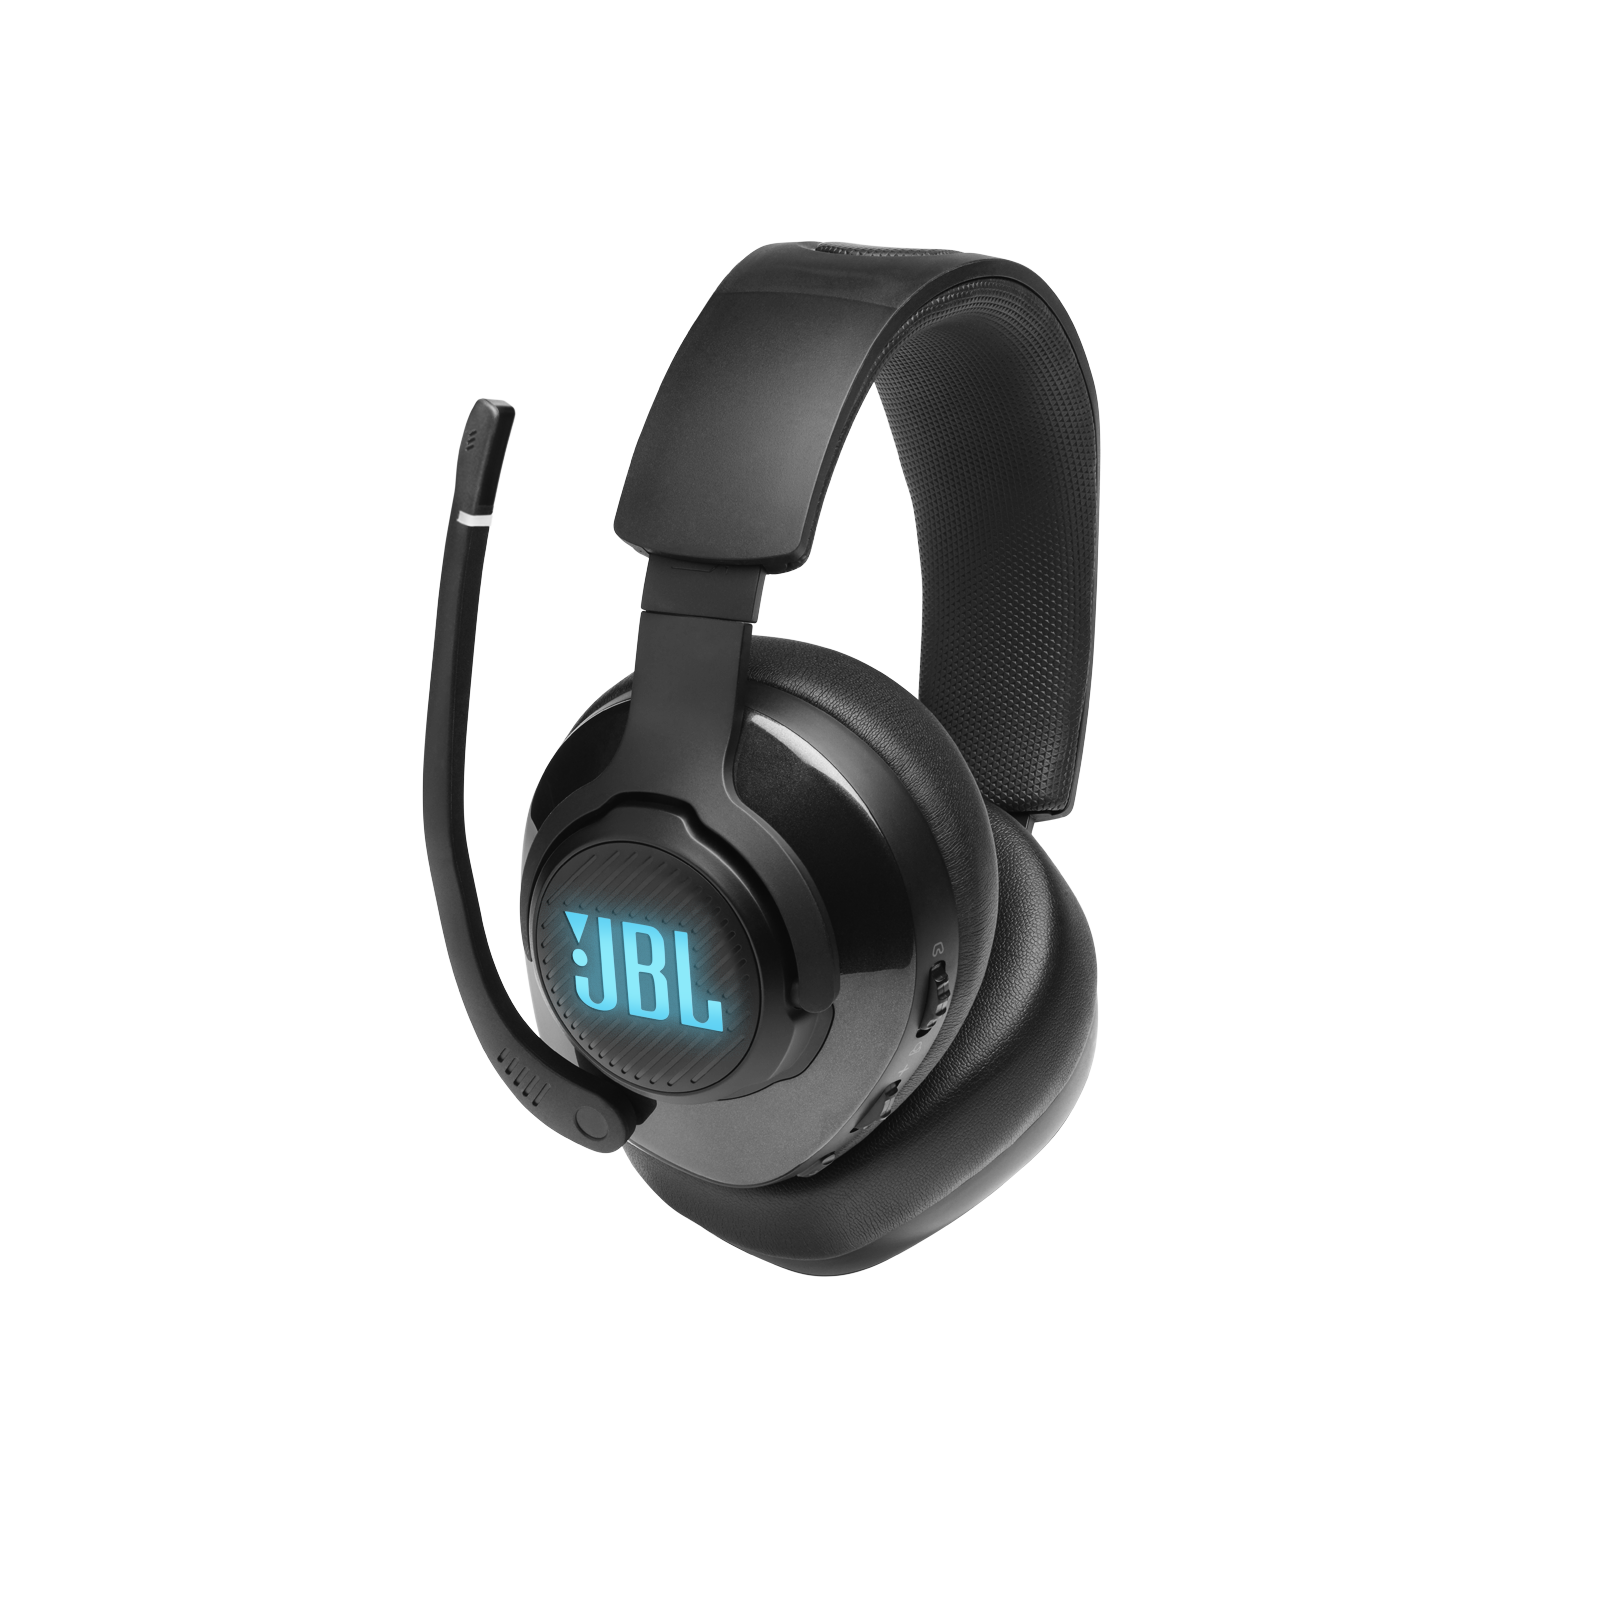 JBL Quantum 400 - Black - USB over-ear gaming headset with game-chat dial - Detailshot 2